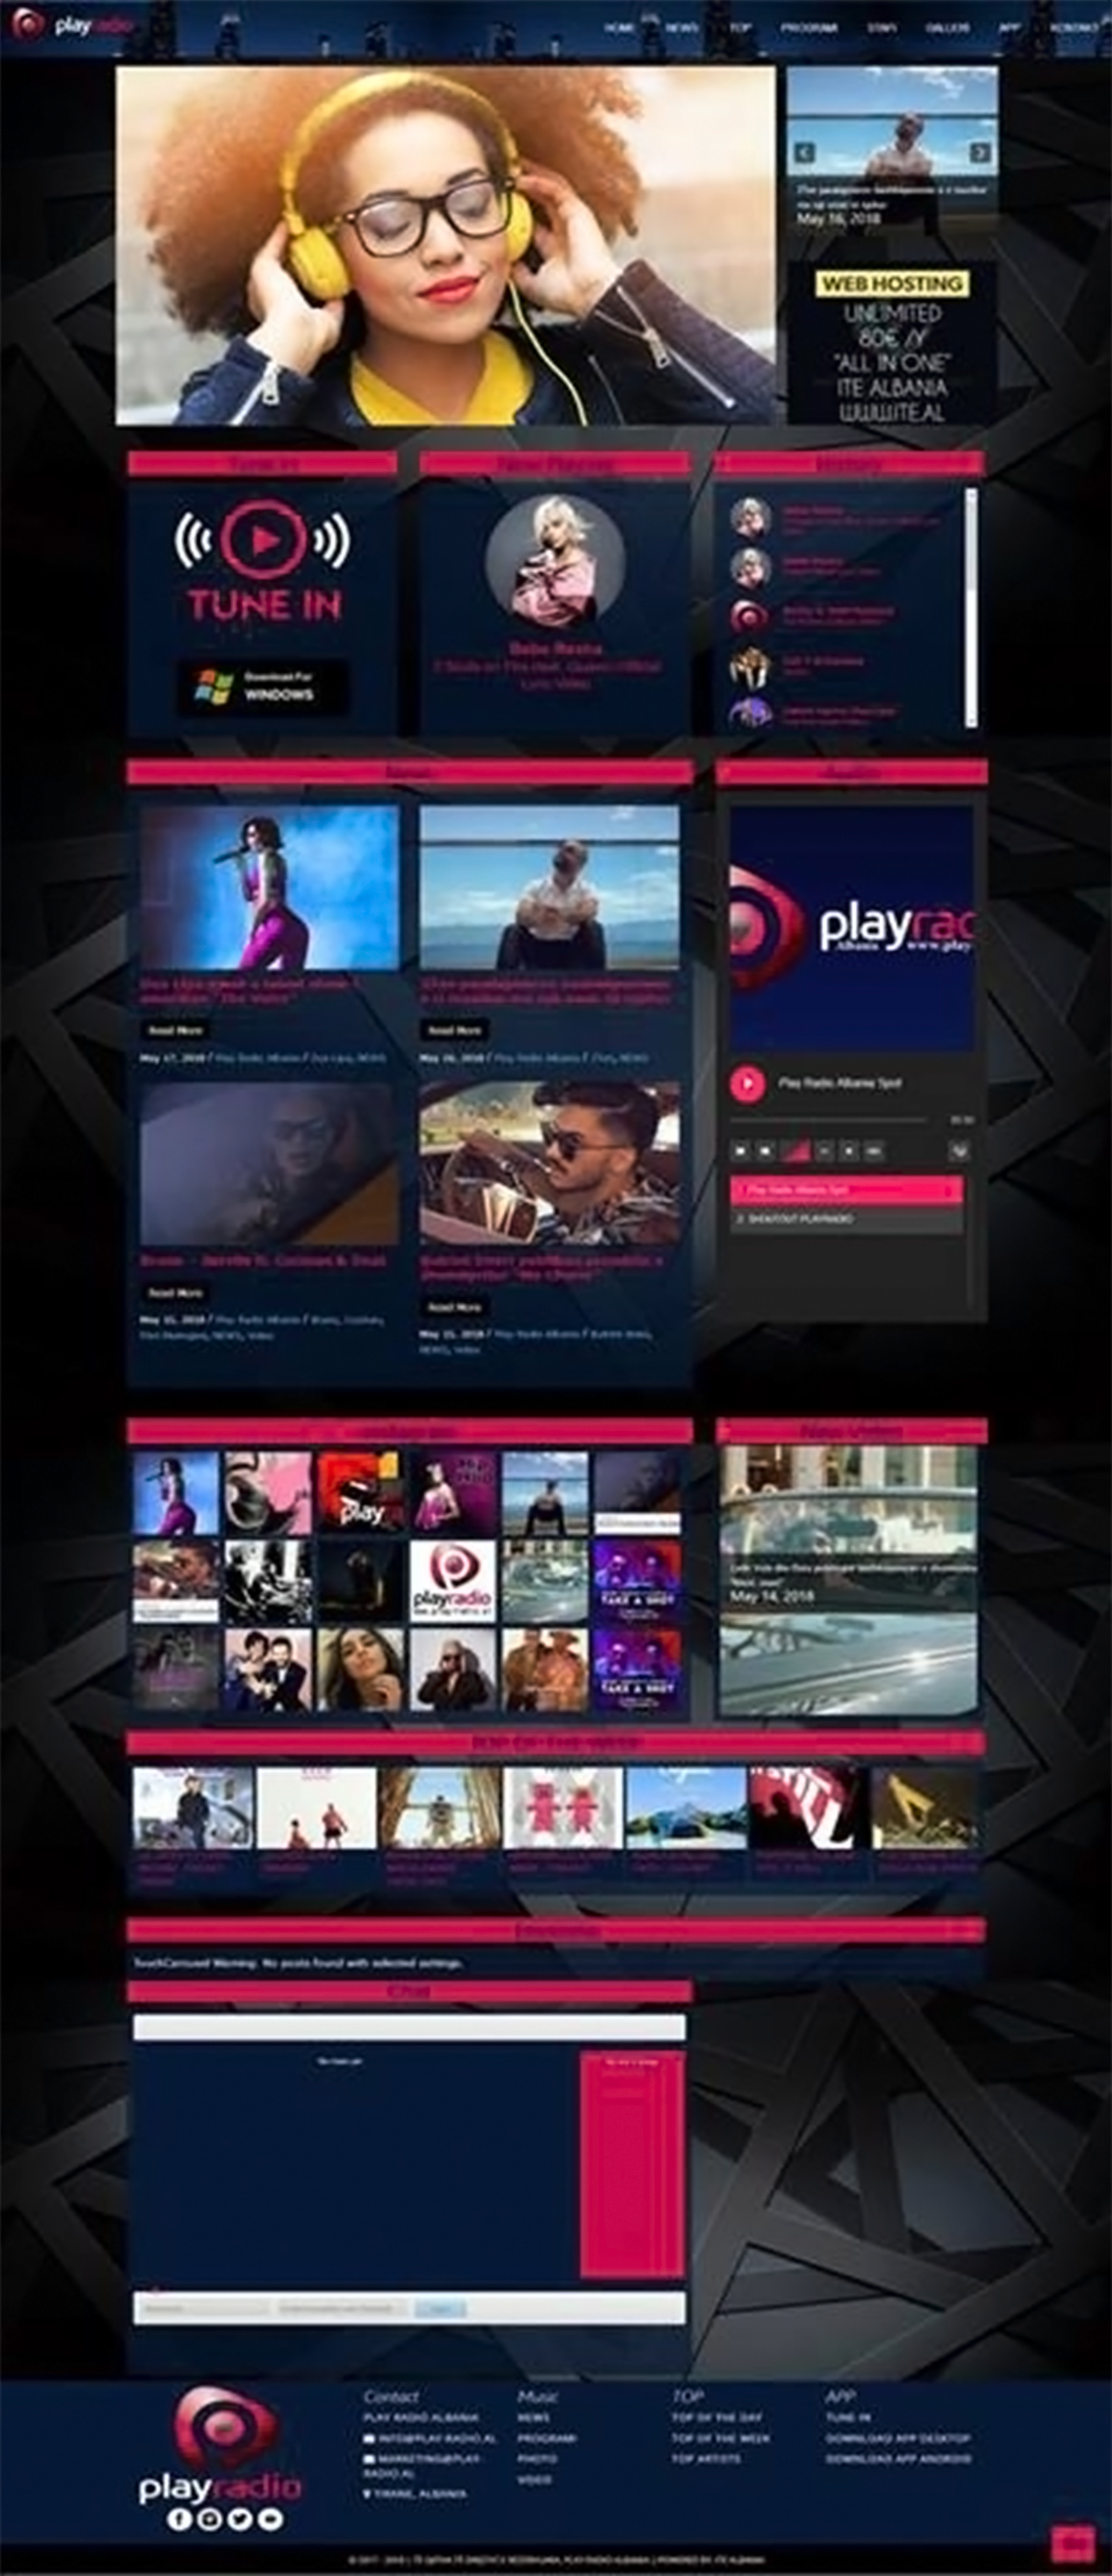 Play Radio Albania - ITE Albania Ltd. | .AL Domain Registration, Web Hosting & Web Development